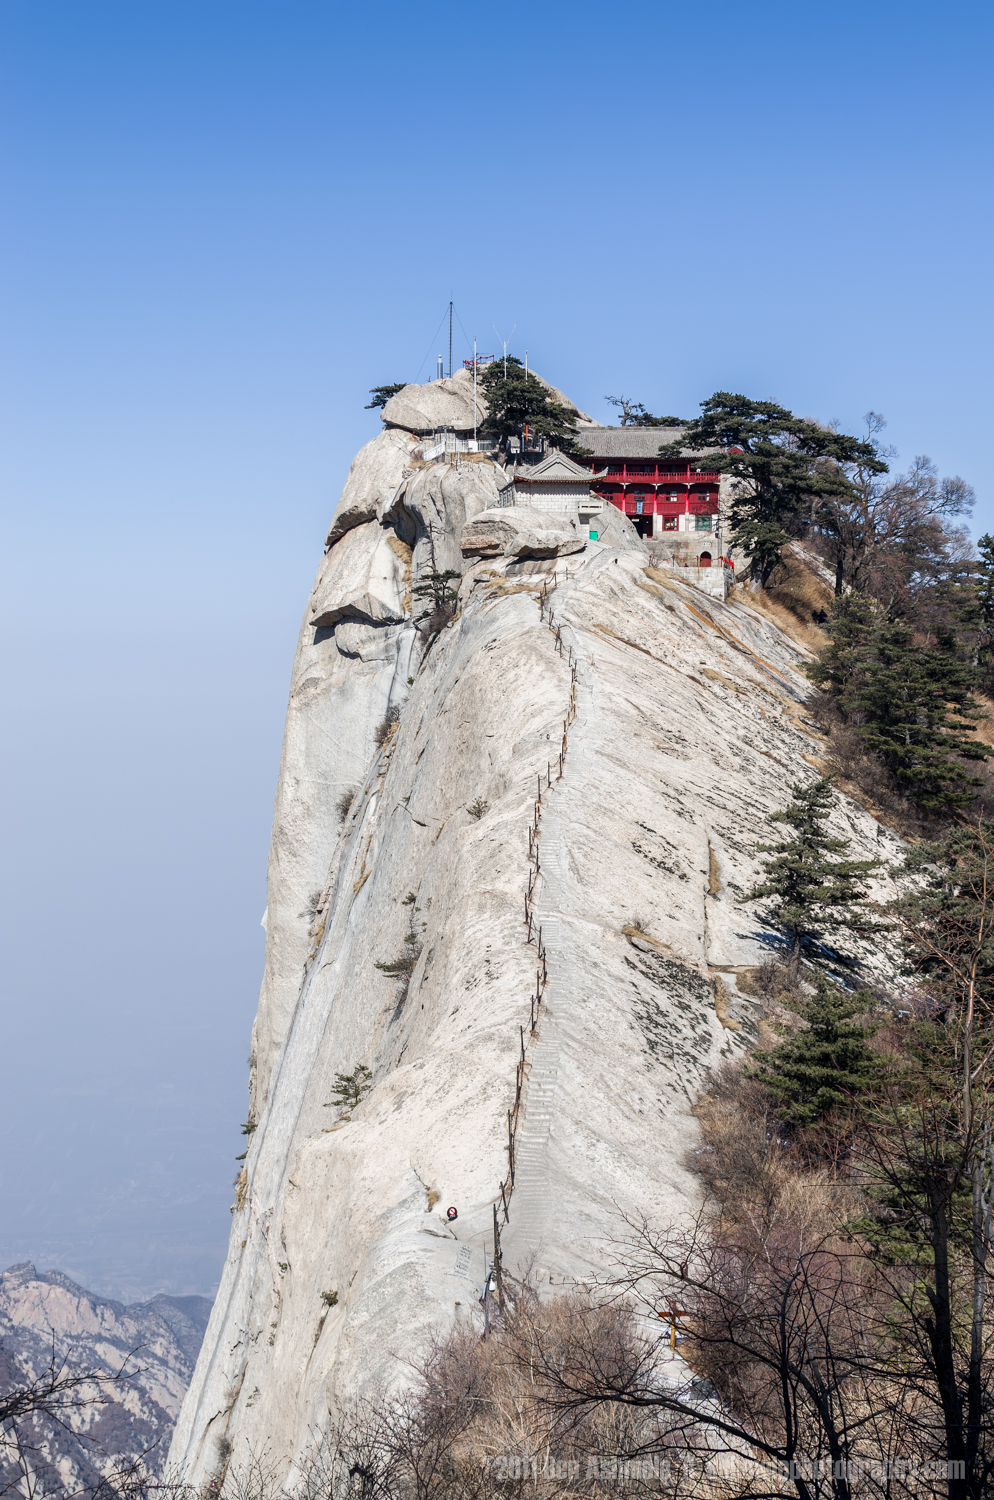 The Lonely Temple, Hua Shan, Shaanxi Province, China, Ben Ashmol